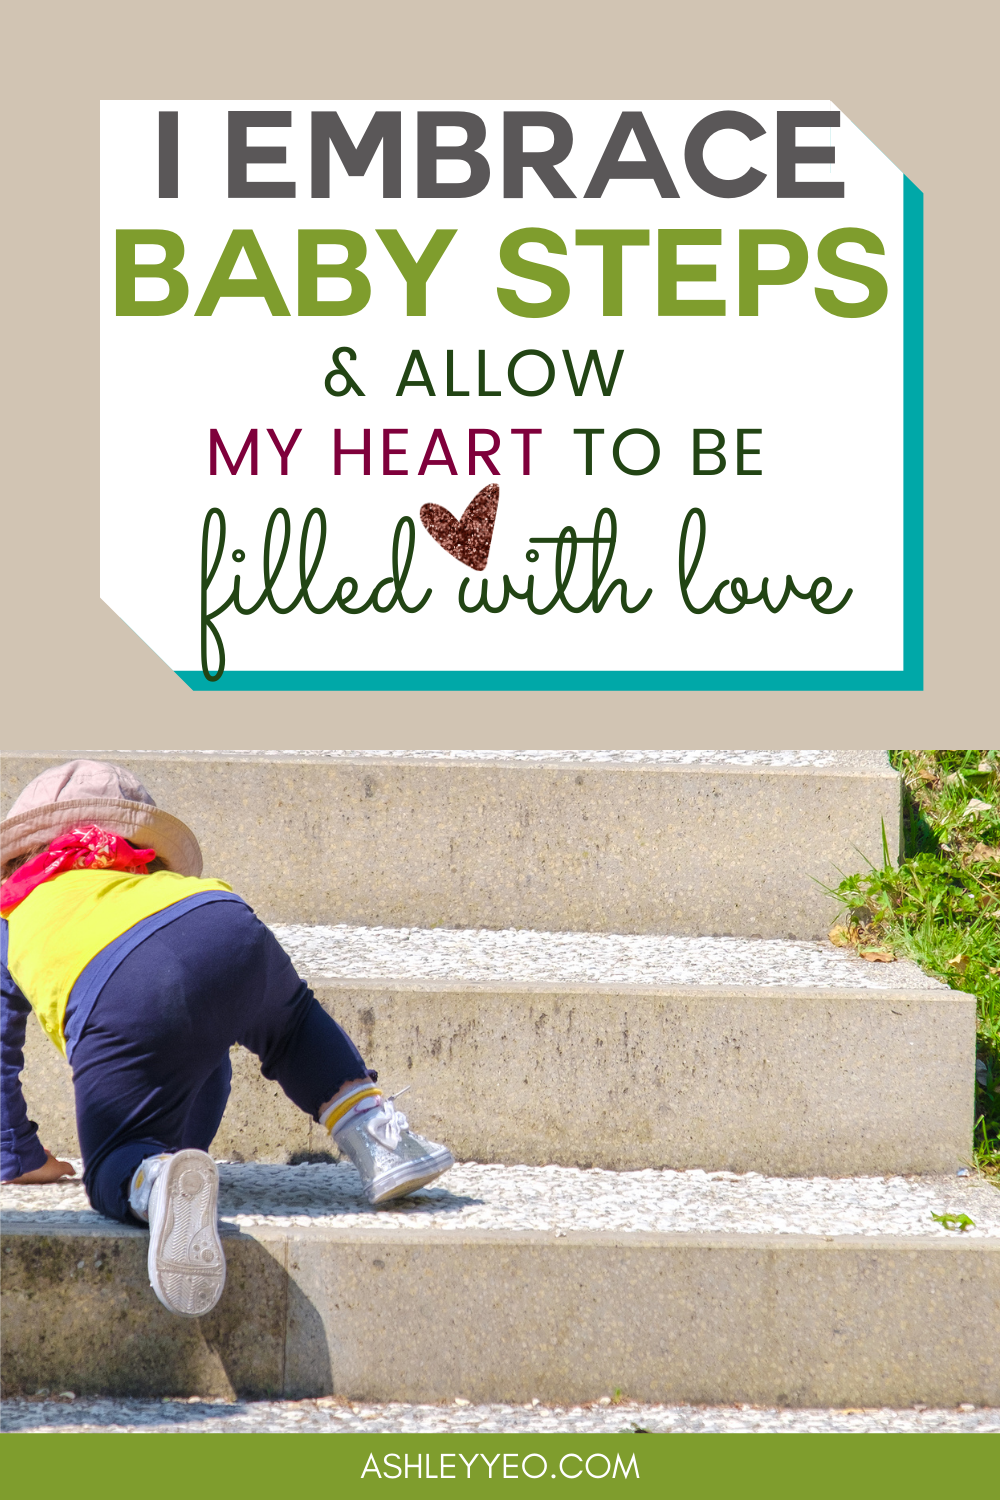 I Embrace Baby Steps And Allow My Heart To Be Filled With Love